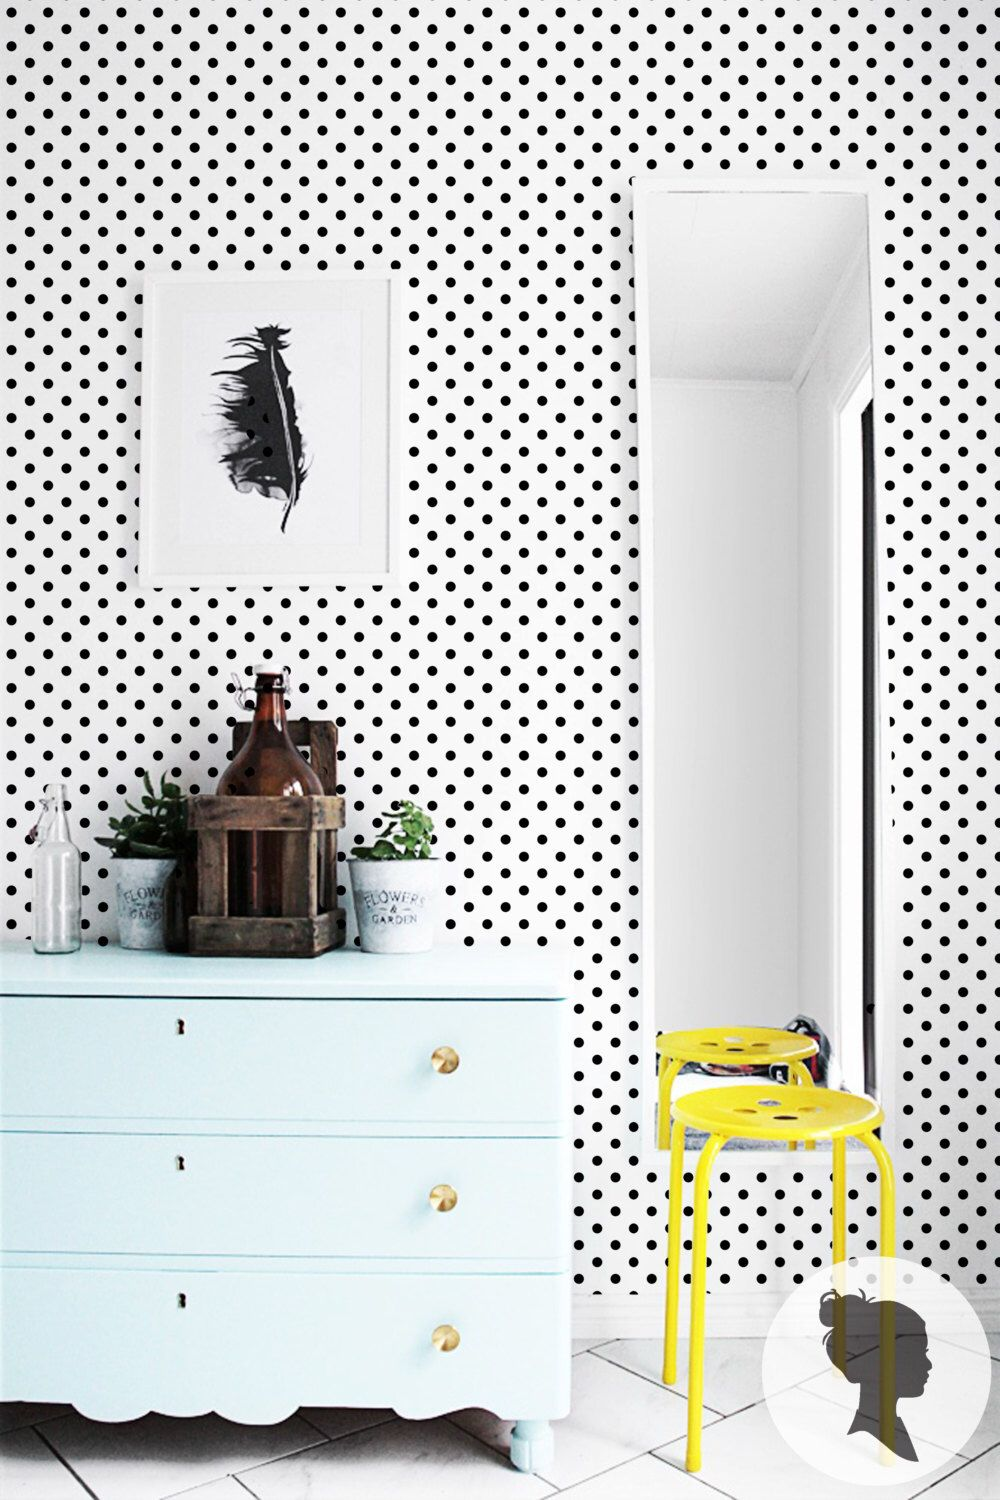 Black Polka Dot Wallpaper / Self Adhesive Removable or